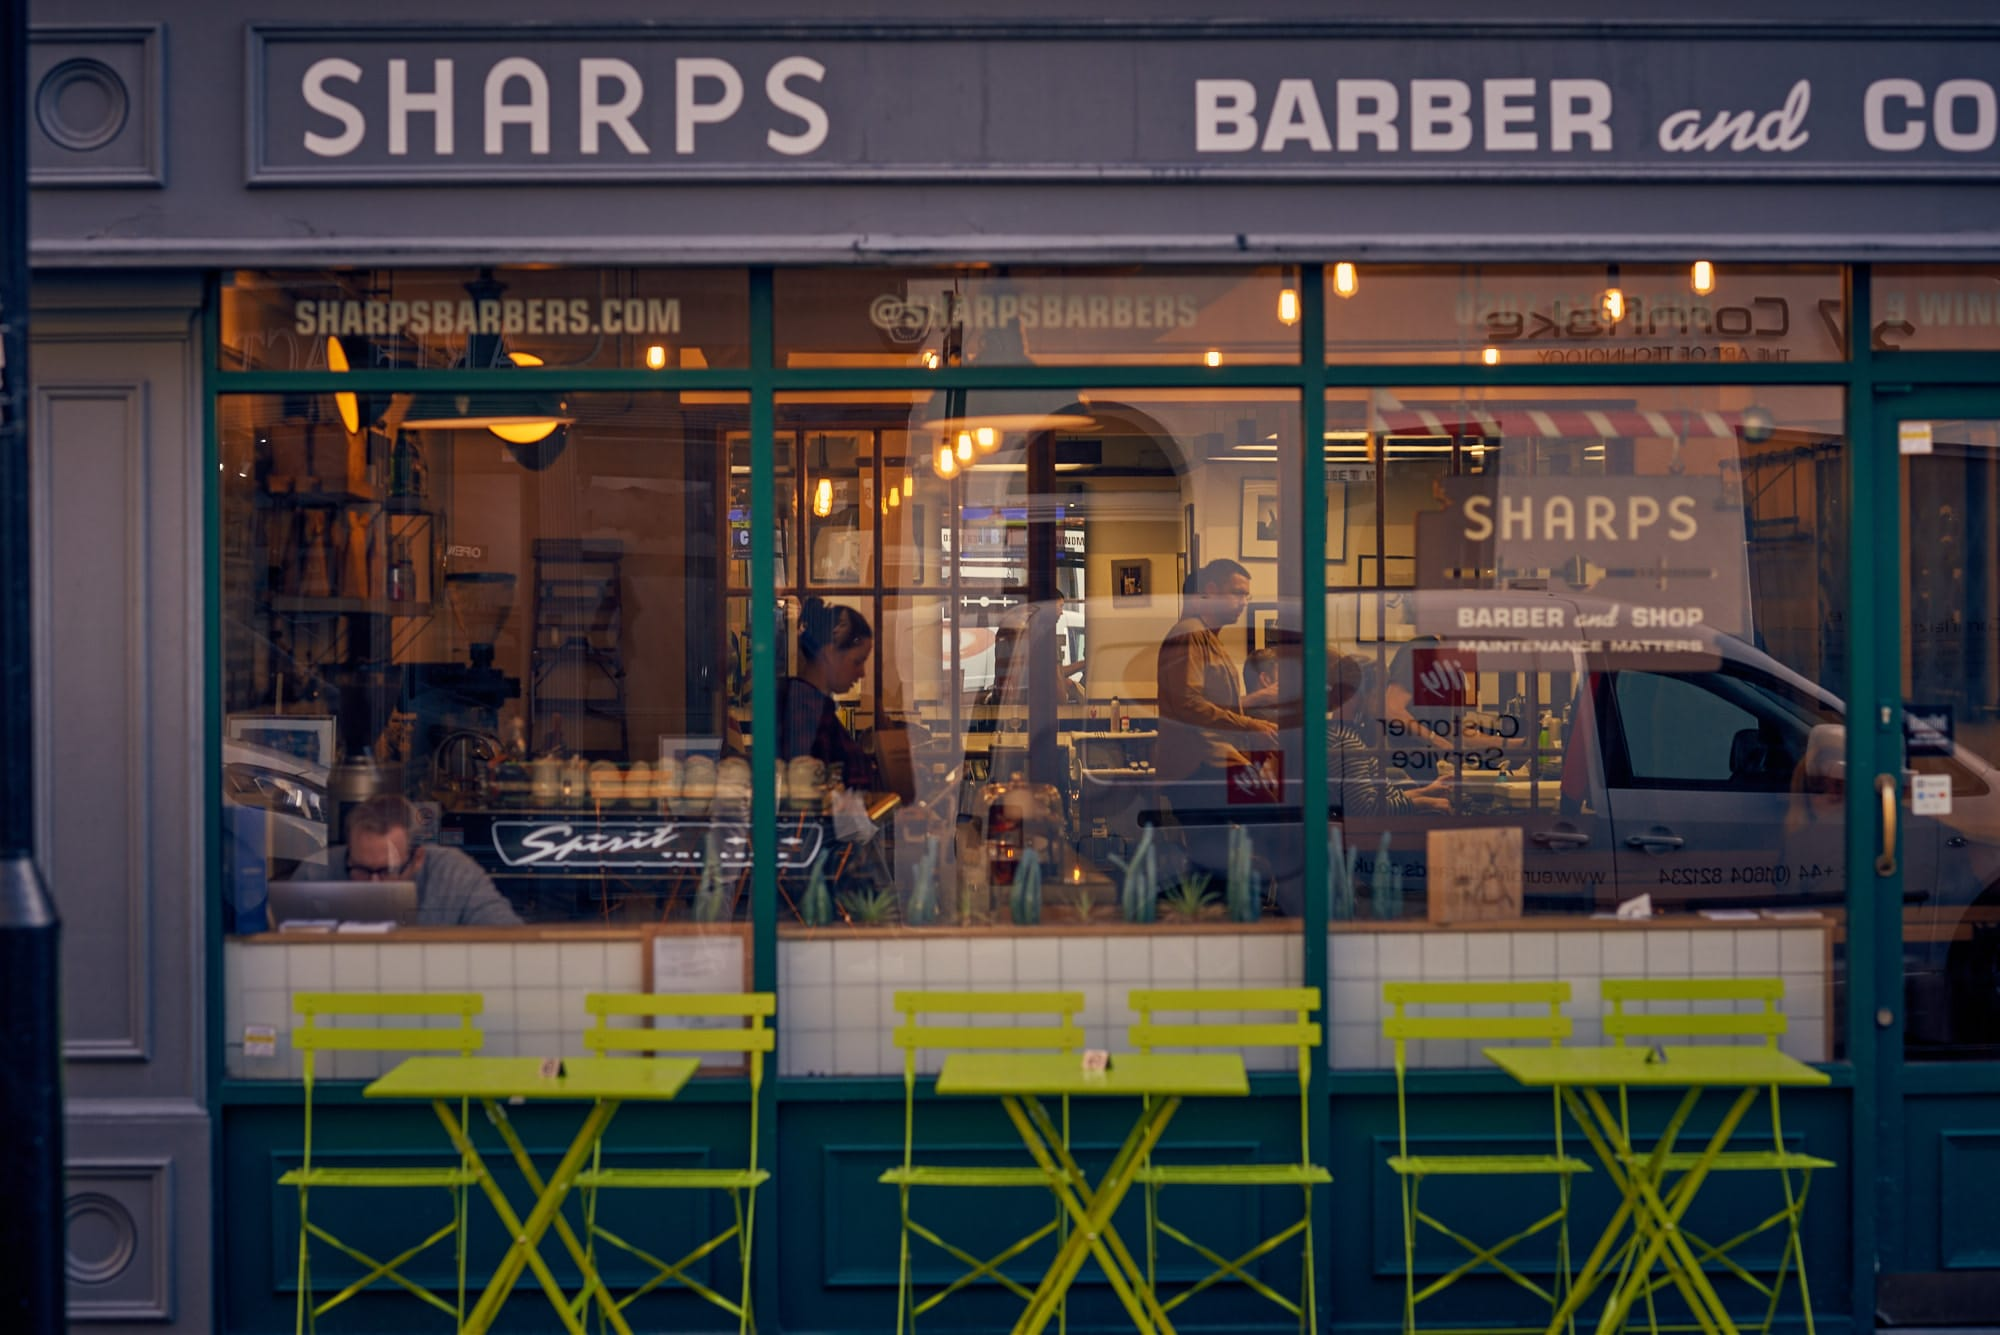 Sharps Barber & Shop